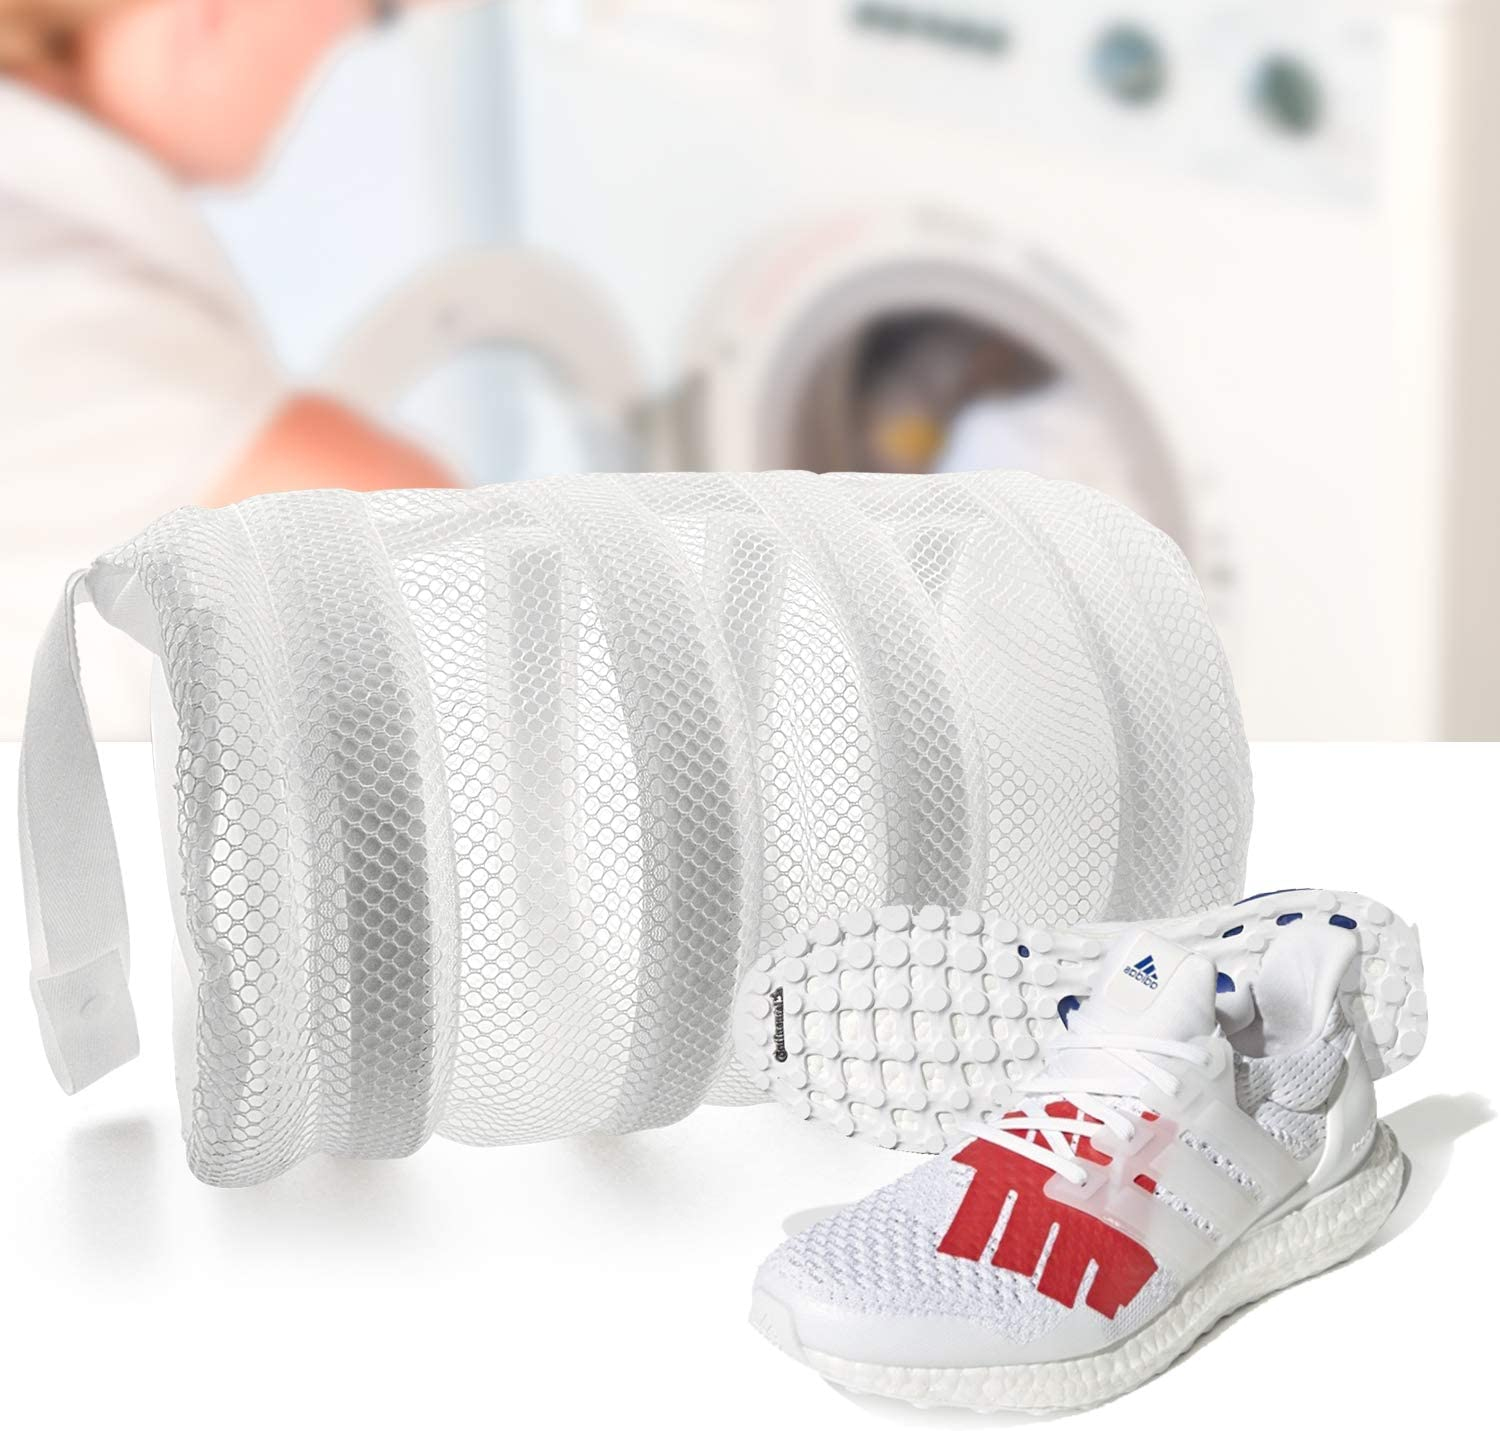 SOOHAO Shoes Wash Bags with Bumper Protectors, Shoes Laundry Bags for Washing Machine, Mesh Laundry Bag and Laundry Dryer for Shoes Sneakers Knitted Sock Shoes and Delicates